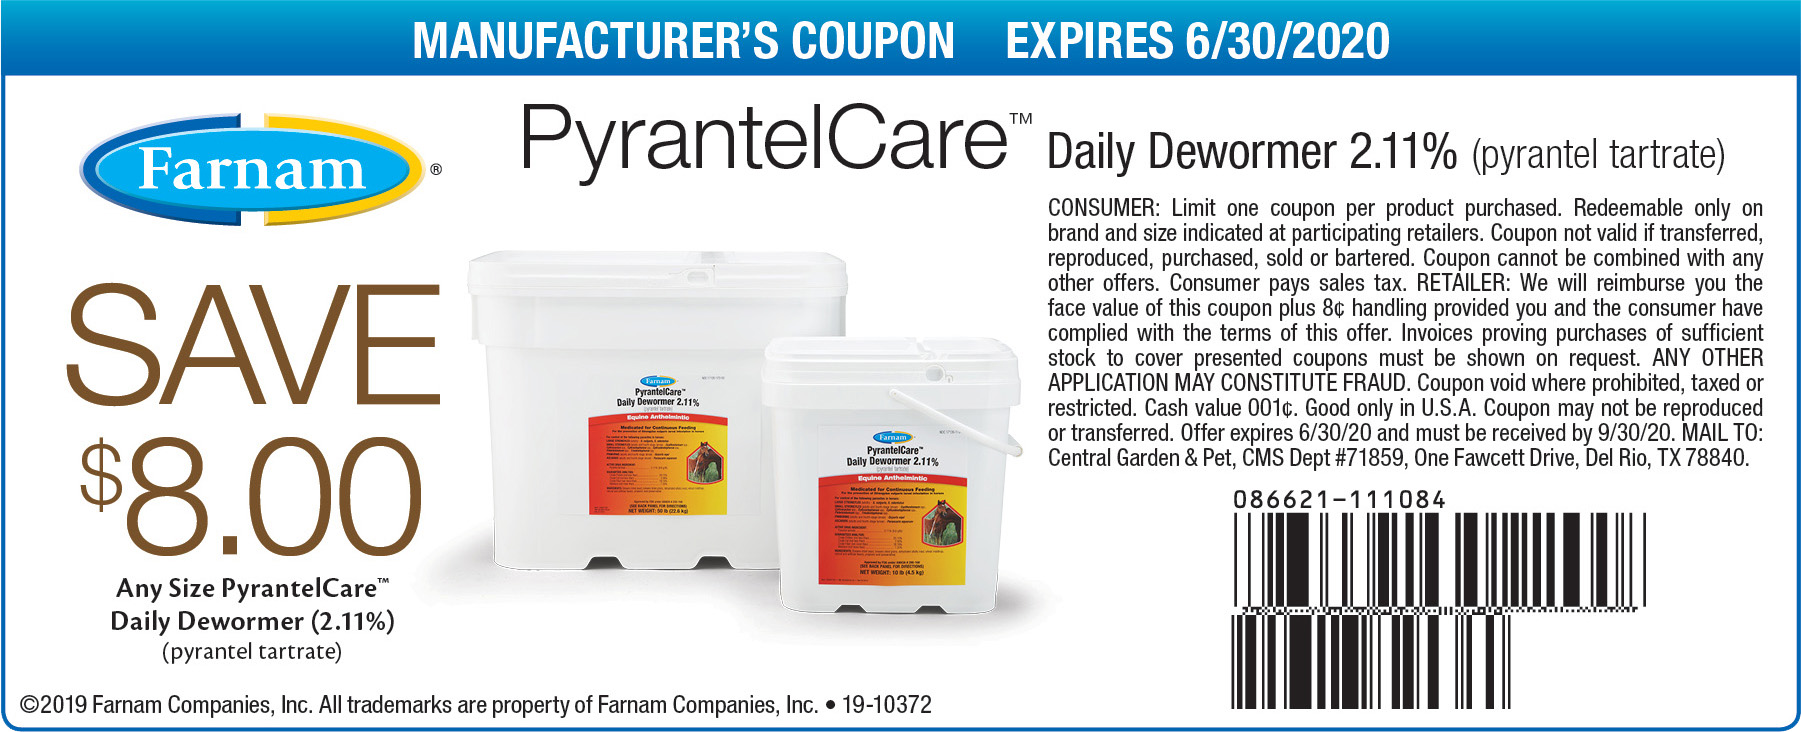 19-10372_FM_111084_Any1PyrantelCareDDW2.11_Save$8_DigitalCoupon